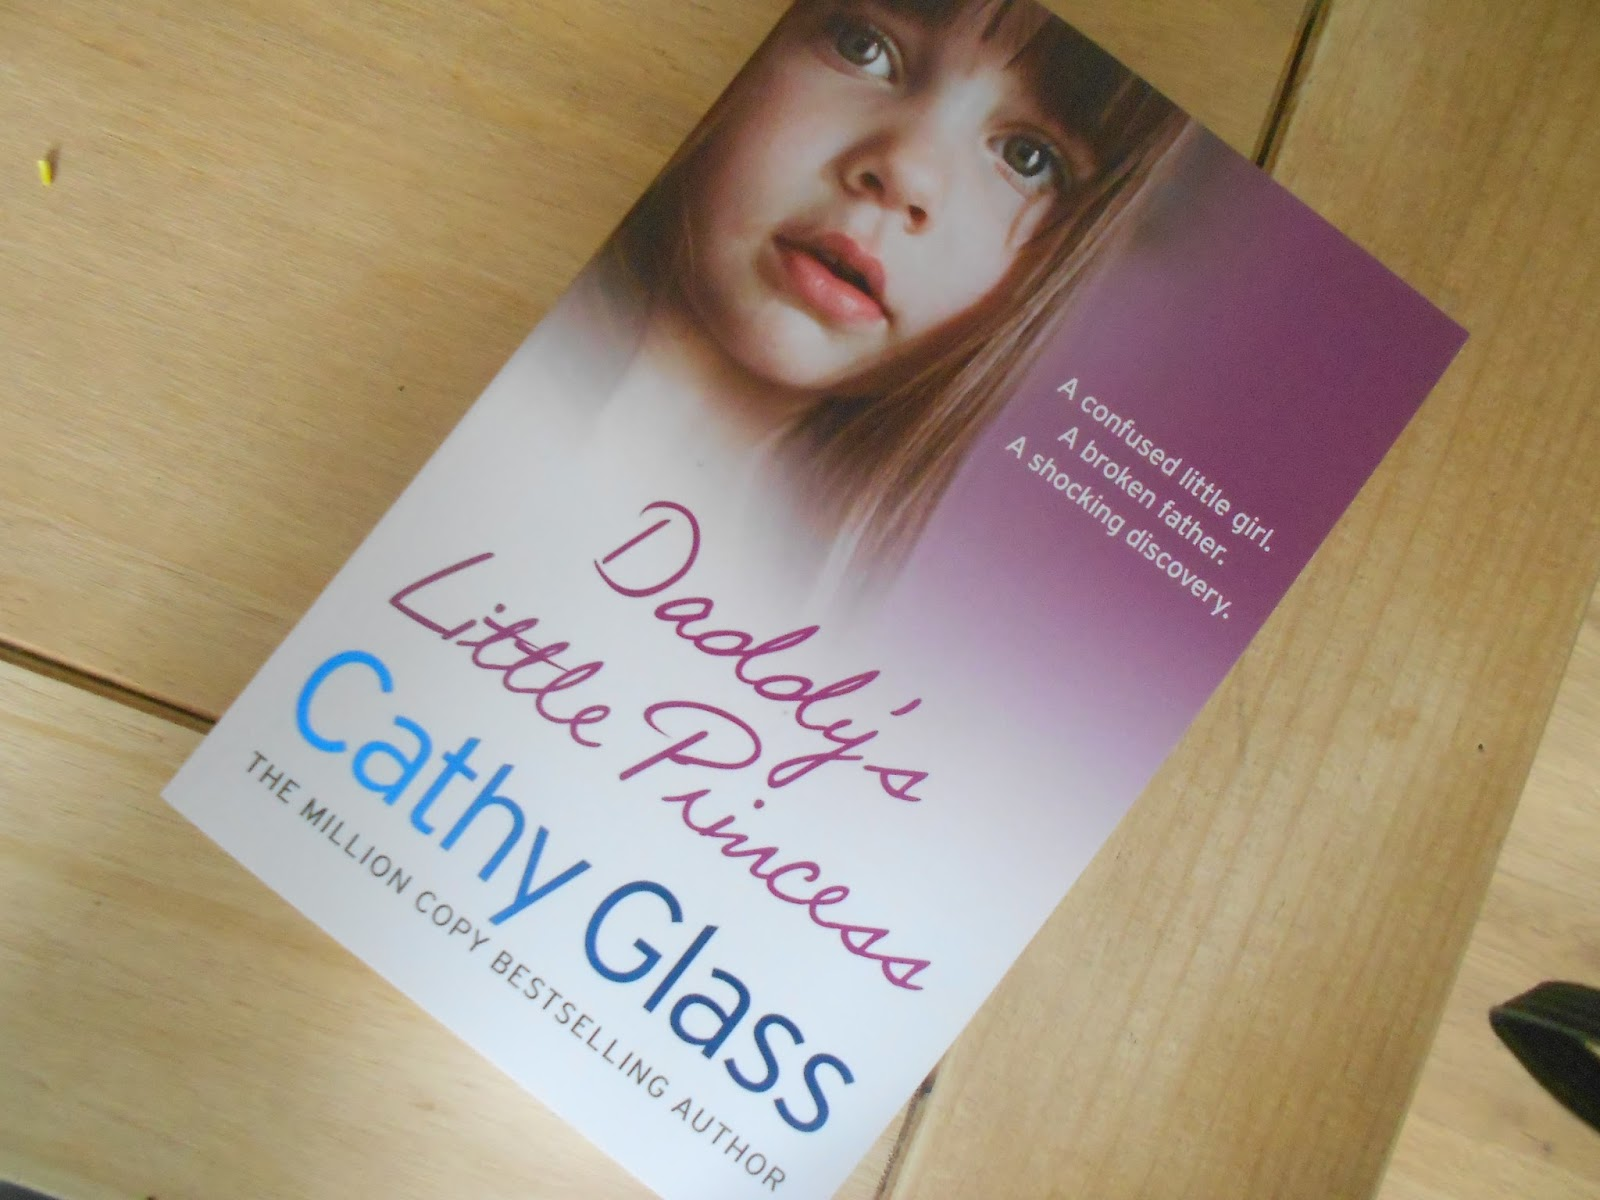 Cathy glass book